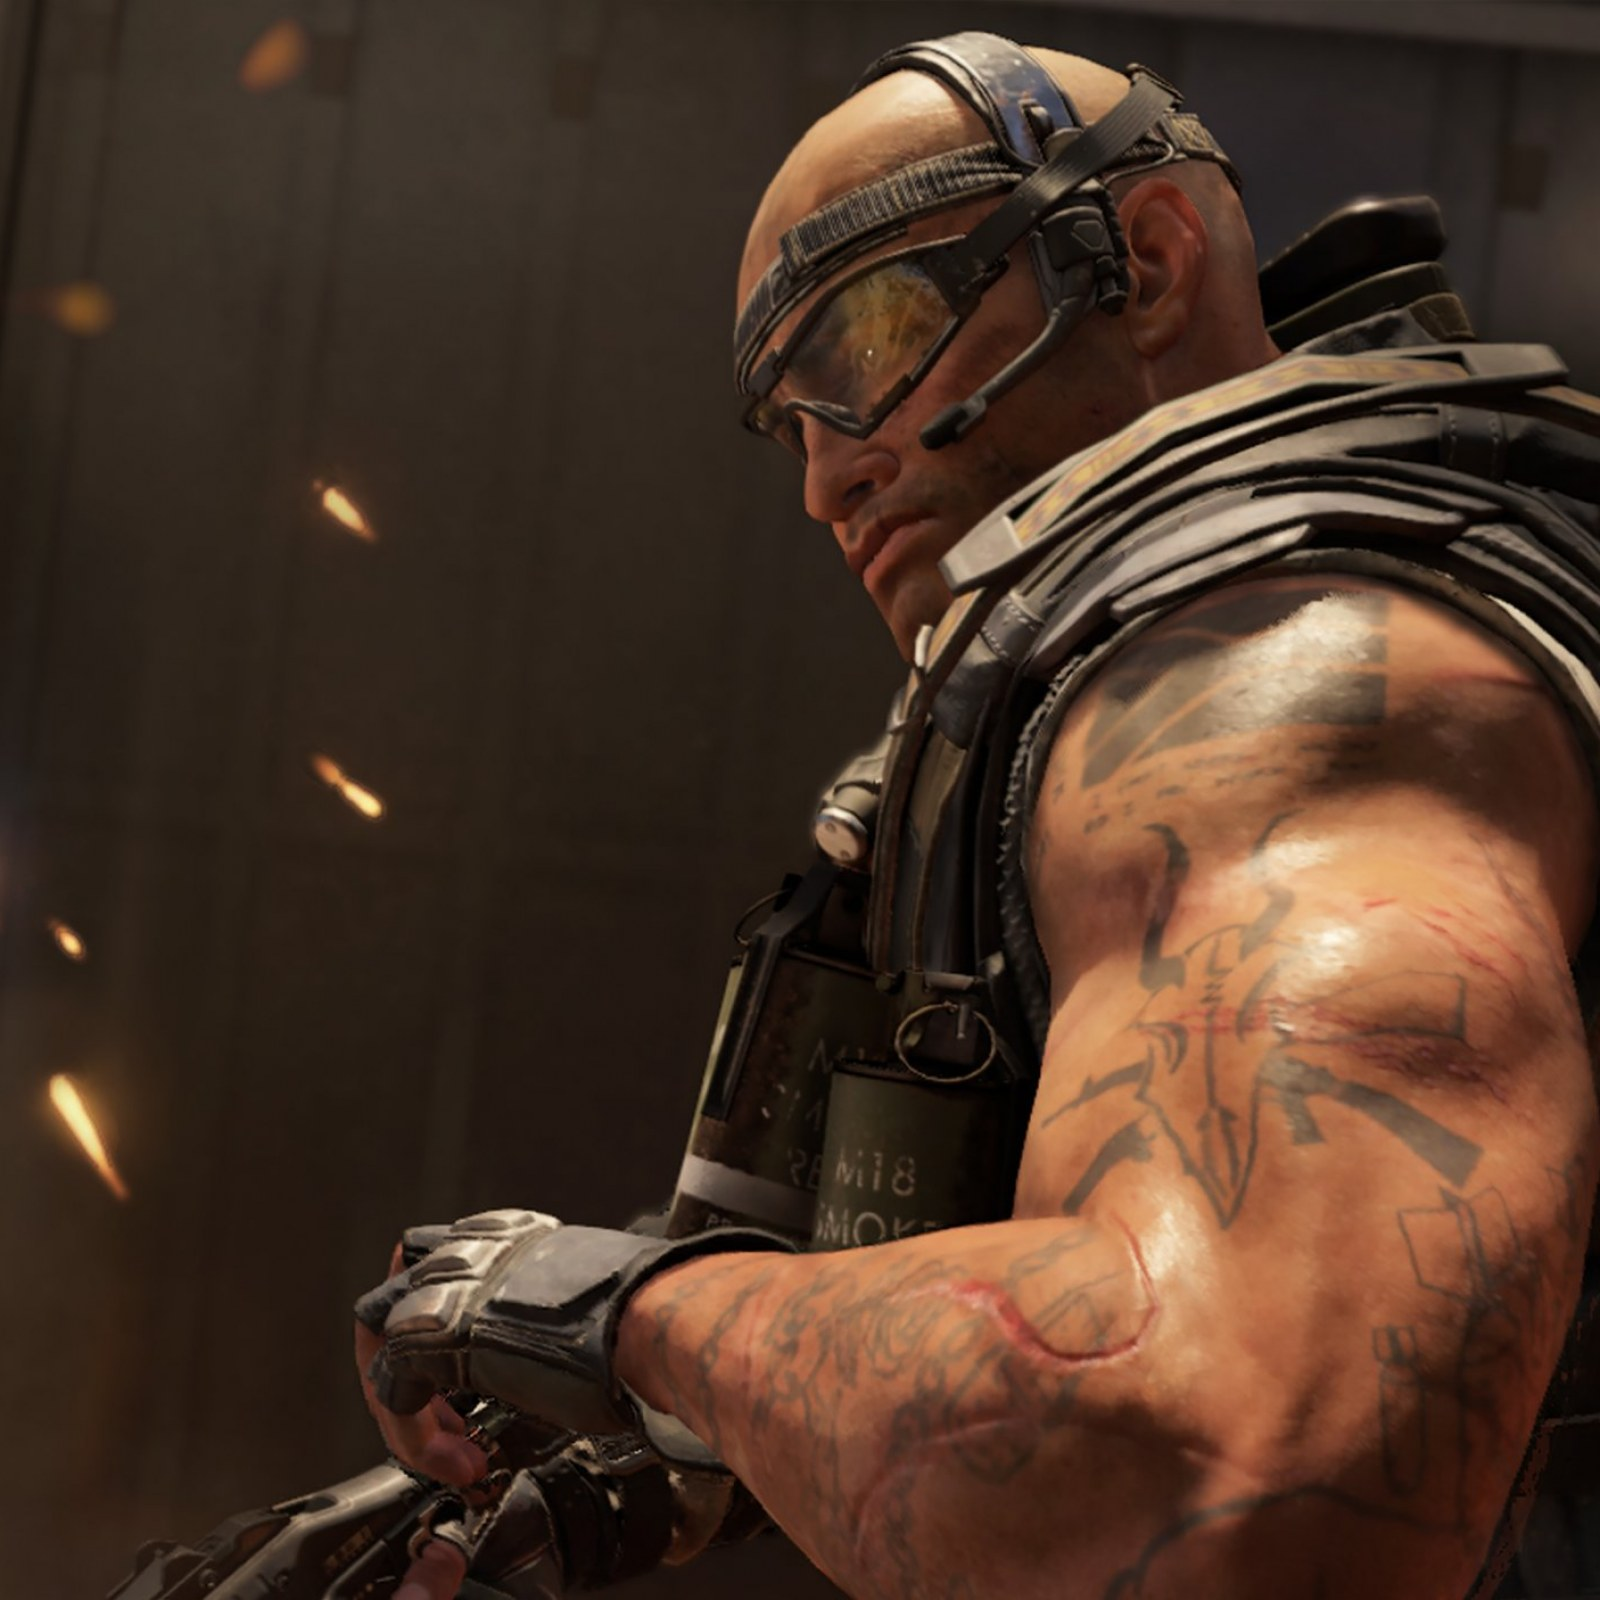 Call of Duty: Black Ops 4' Update 1 05 Adds Nuketown